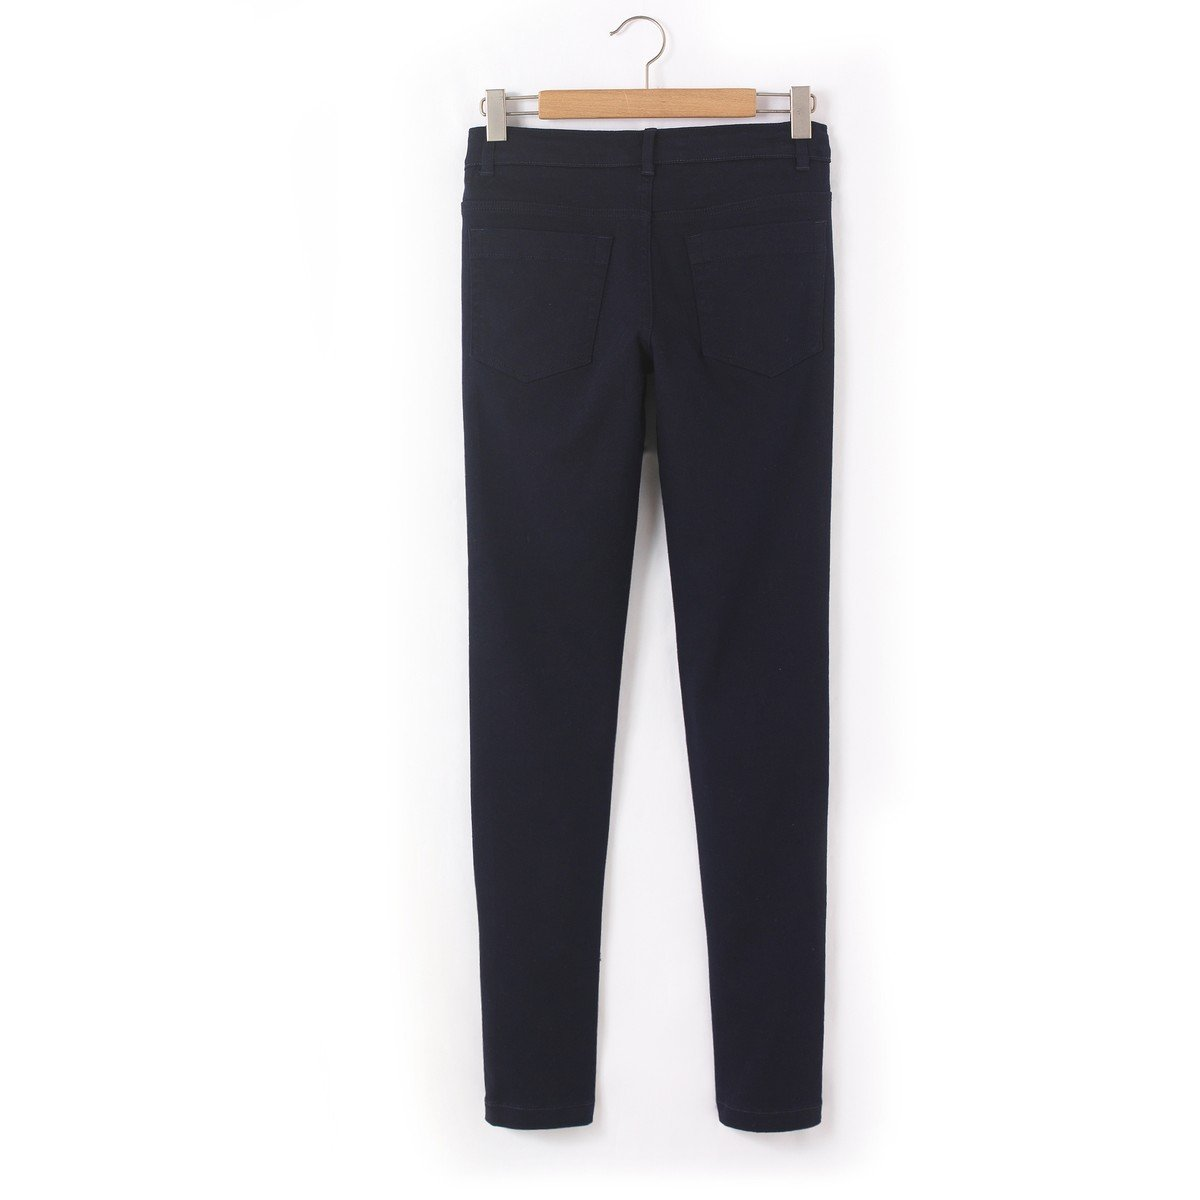 10-16 Years La Redoute Collections Big Boys Slim Fit Trousers